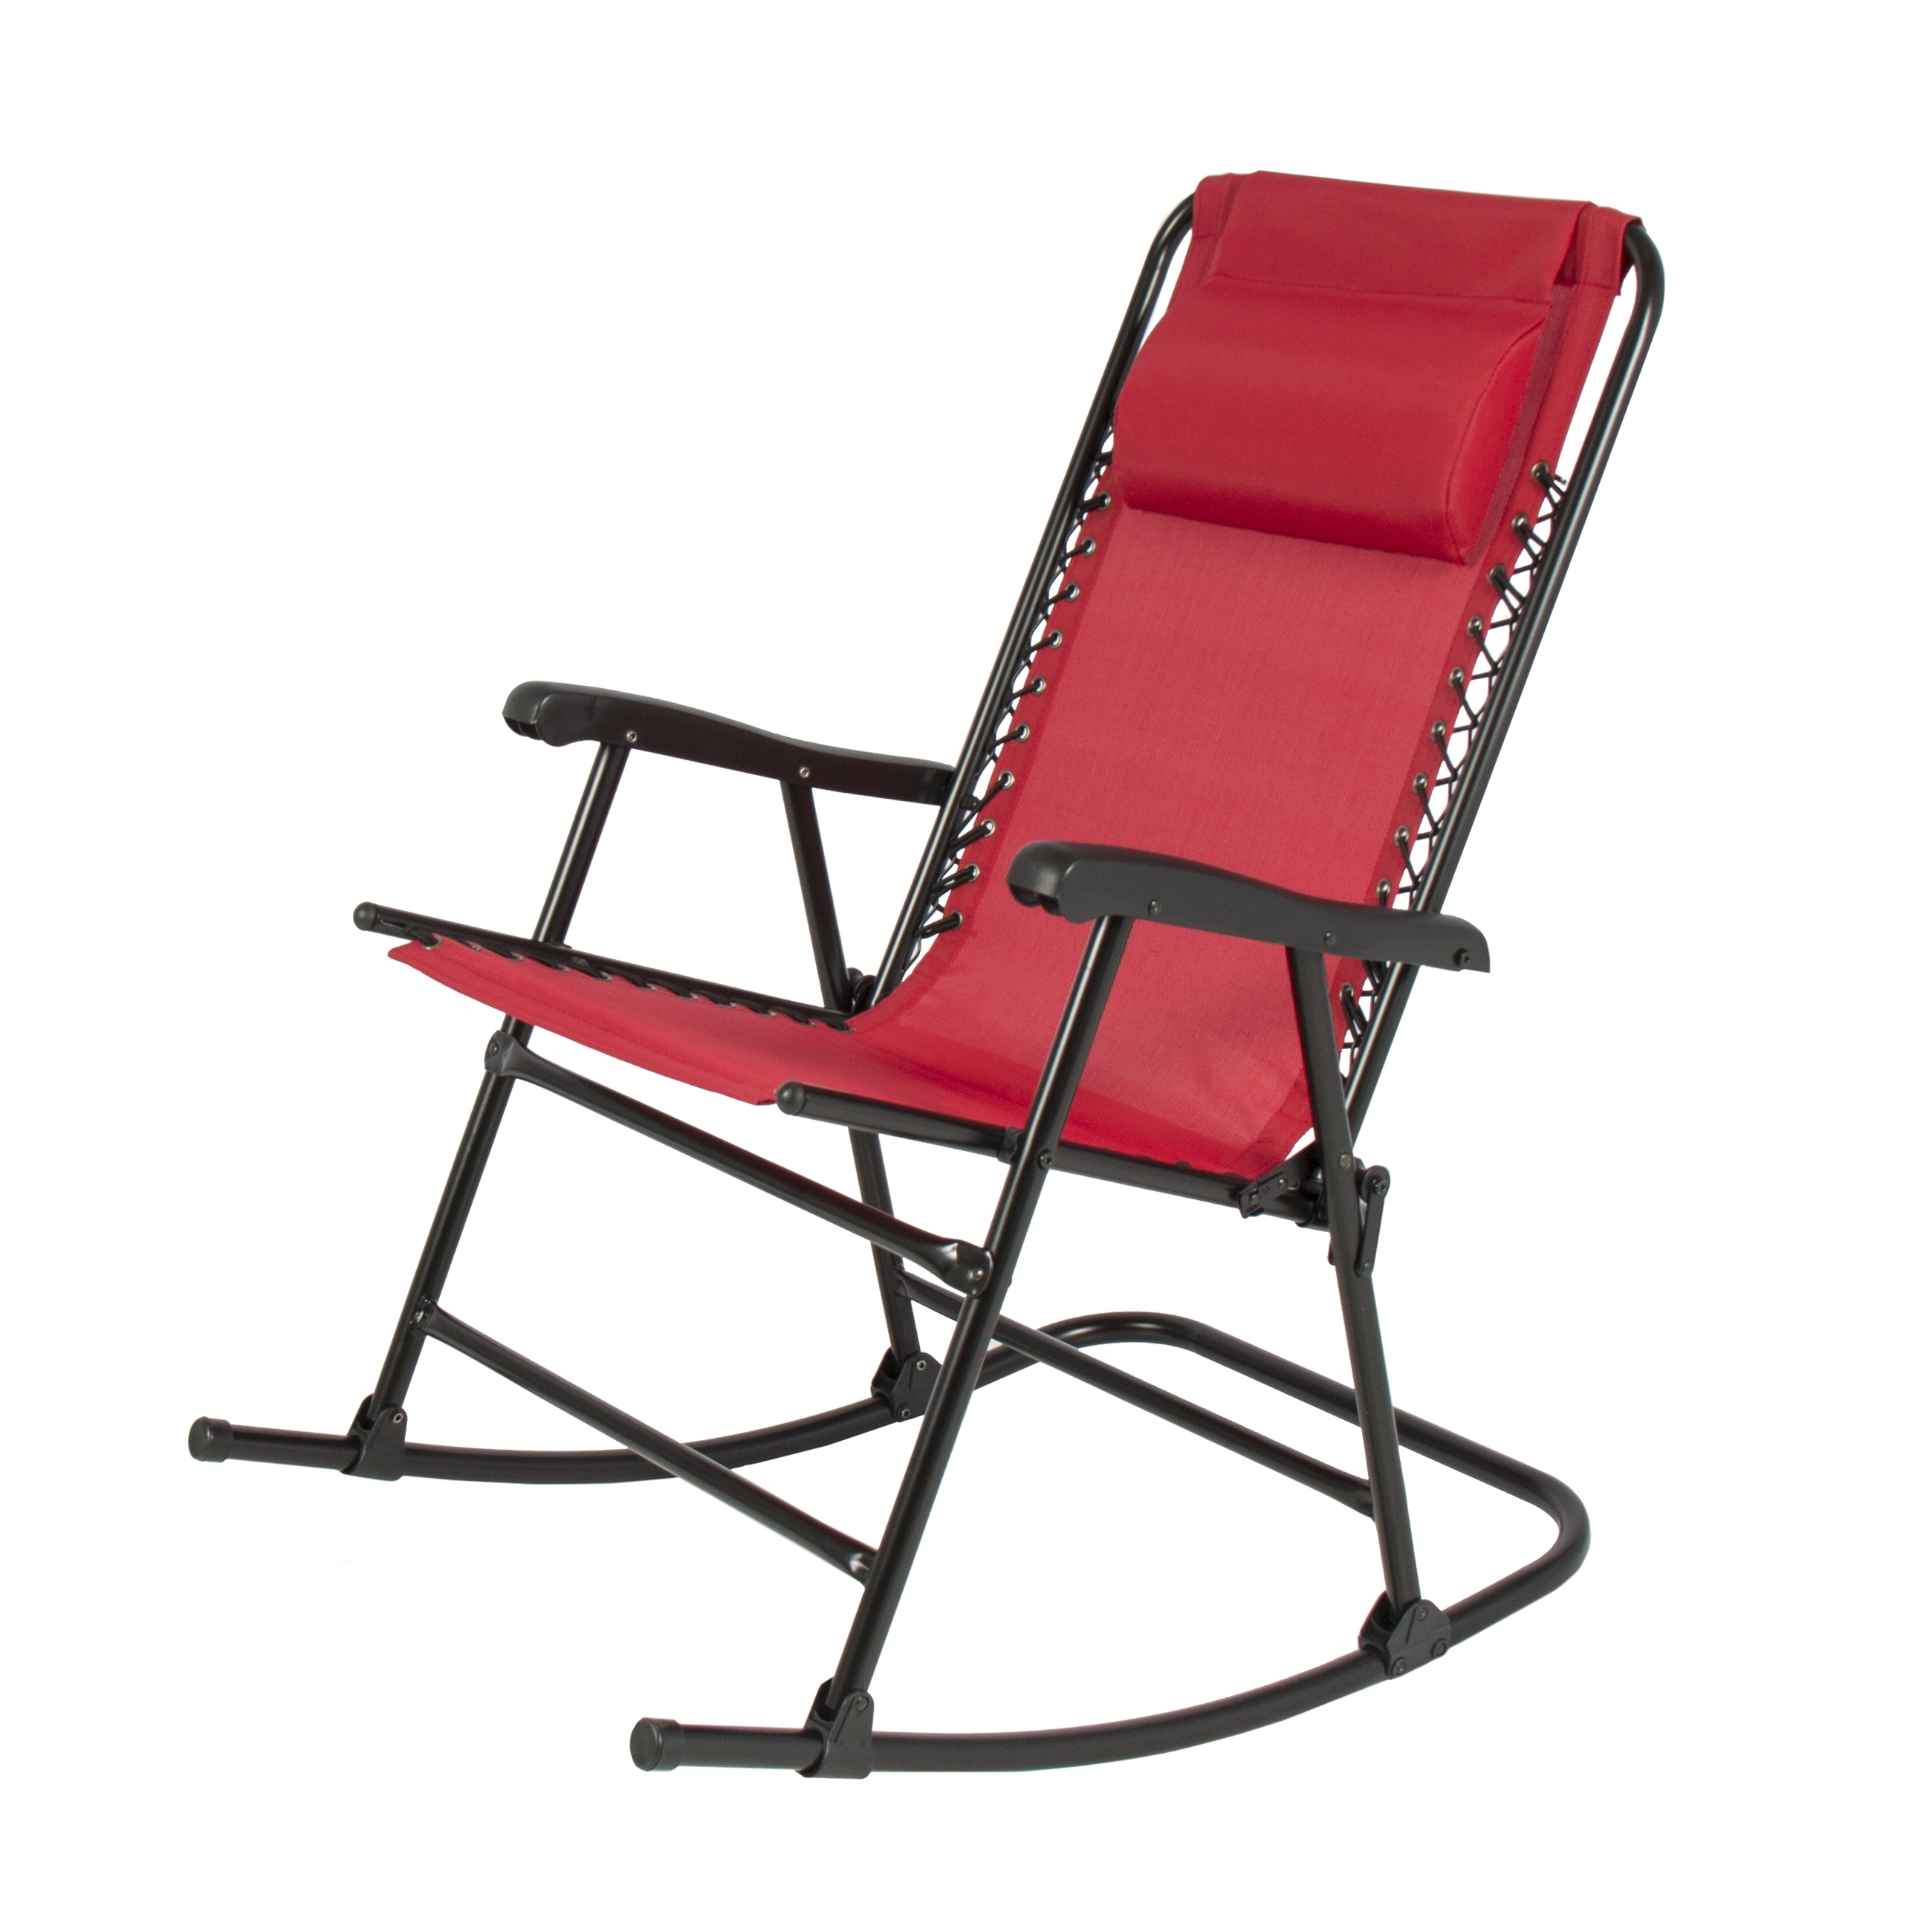 Amazing Of Rocking Patio Chairs Folding Rocking Chair Foldable Regarding Most Popular Red Patio Rocking Chairs (View 3 of 15)